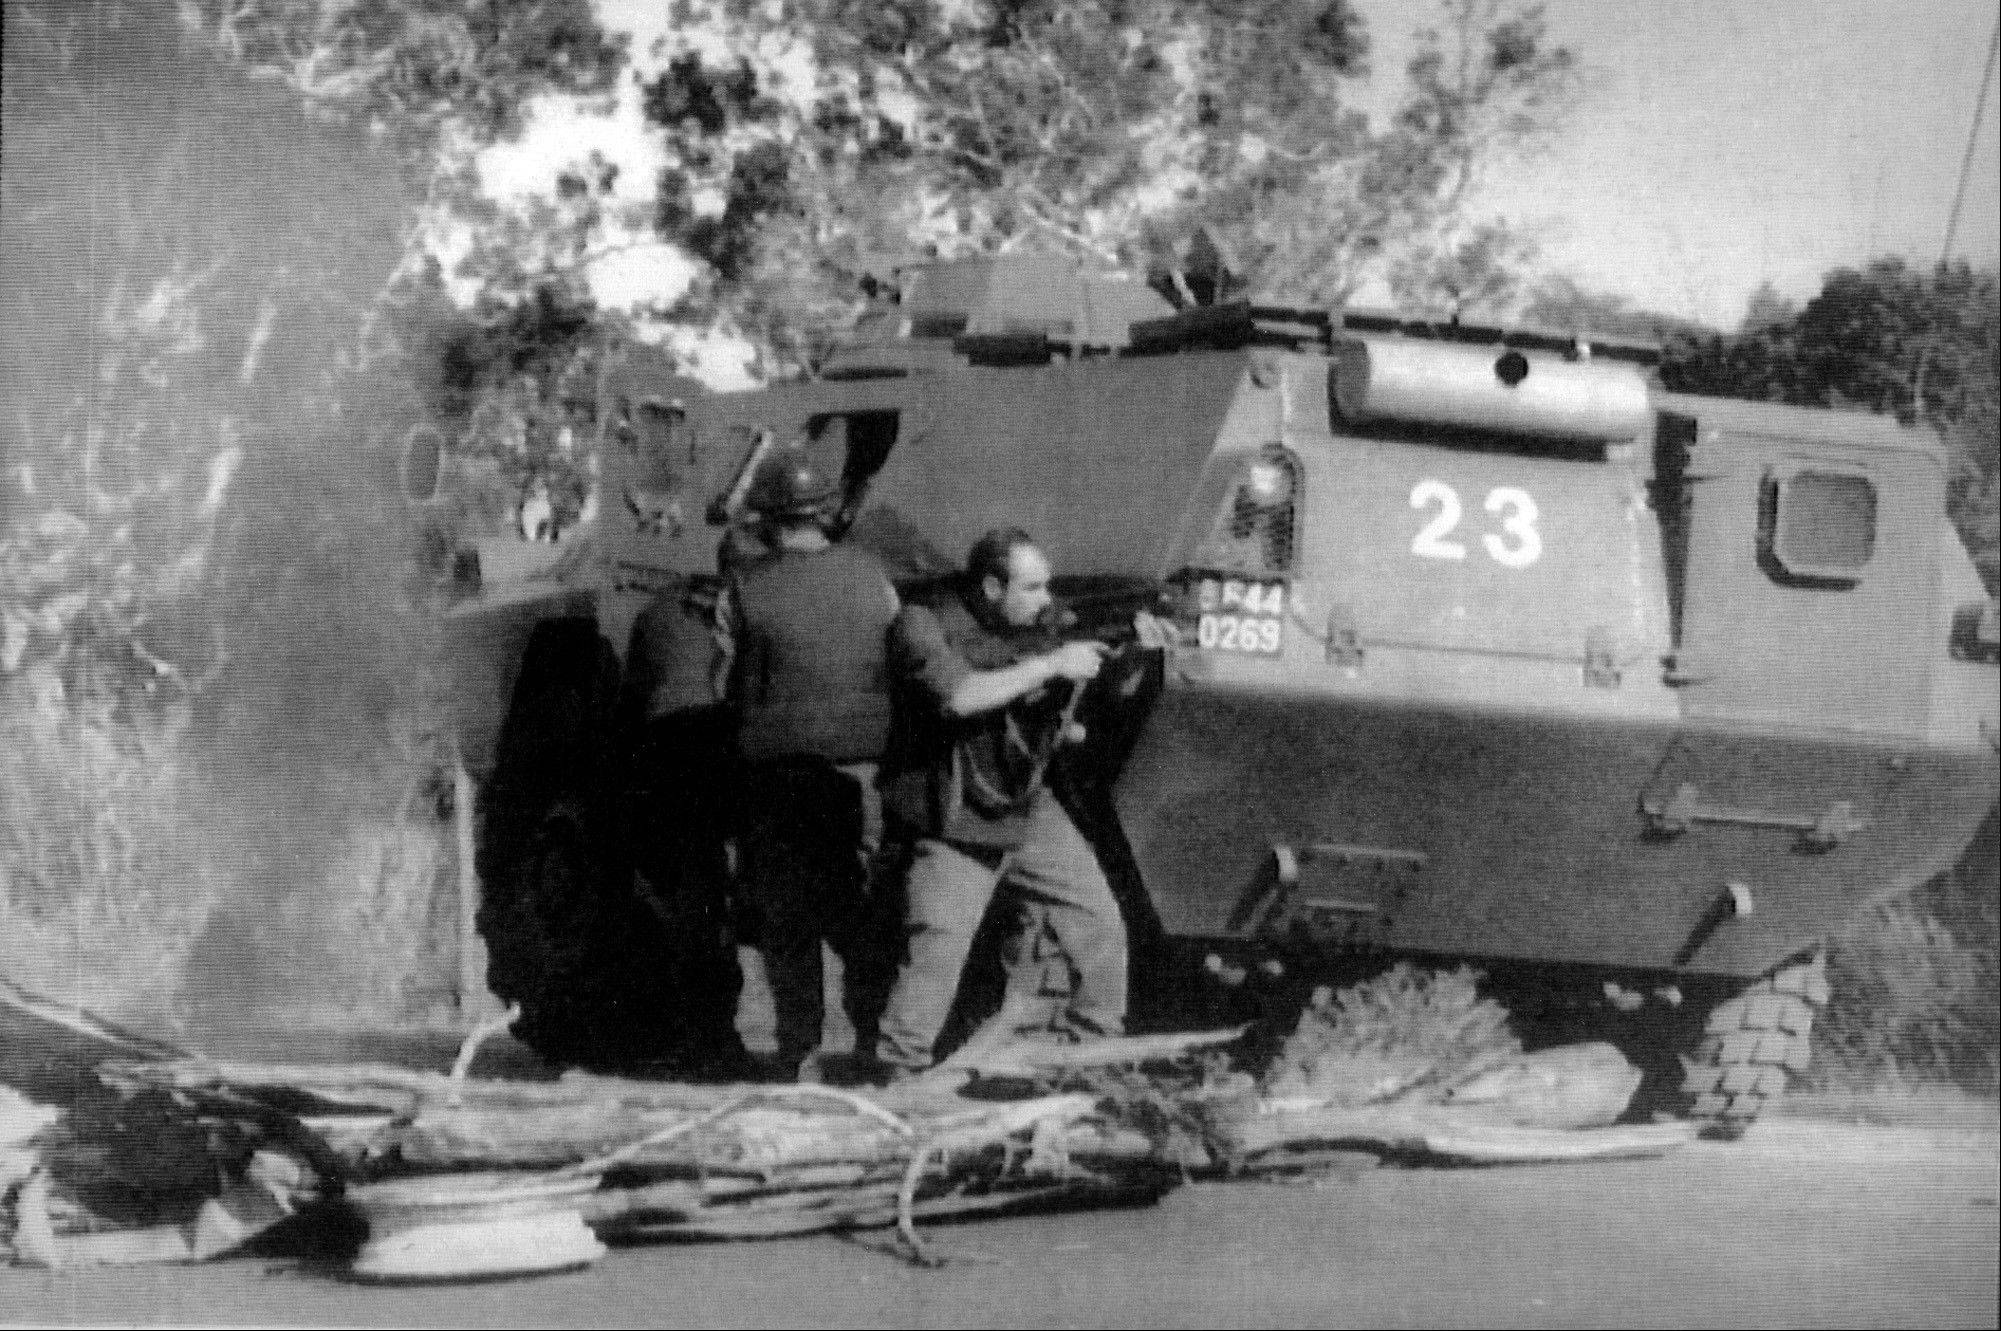 A gendarme aims his weapon as an armored vehicle destroys a barricade erected by independence fighters near Saint-Louis, on the French Pacific island of New Caledonia. Seven policemen were injured in clashes as New Caledonians voted in France's presidential election. Islanders are expected to vote on independence in a referendum in 2014.